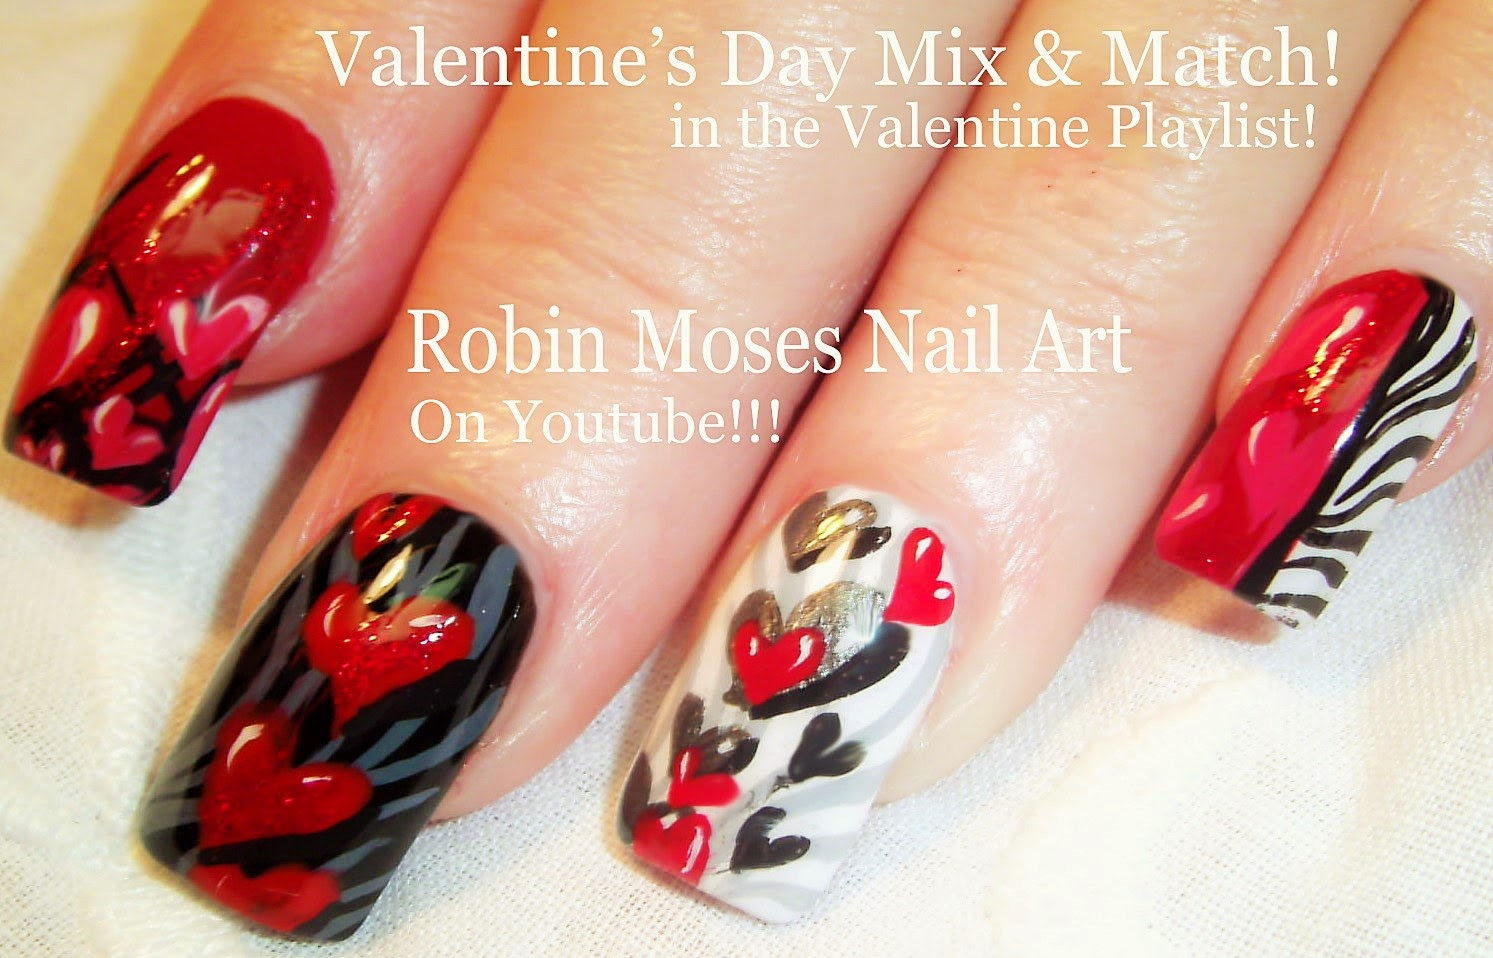 5 Nail Art Tutorials | Valentine Nails | Hearts & Zebra Print Nail Design - Nail Art By Robin Moses: